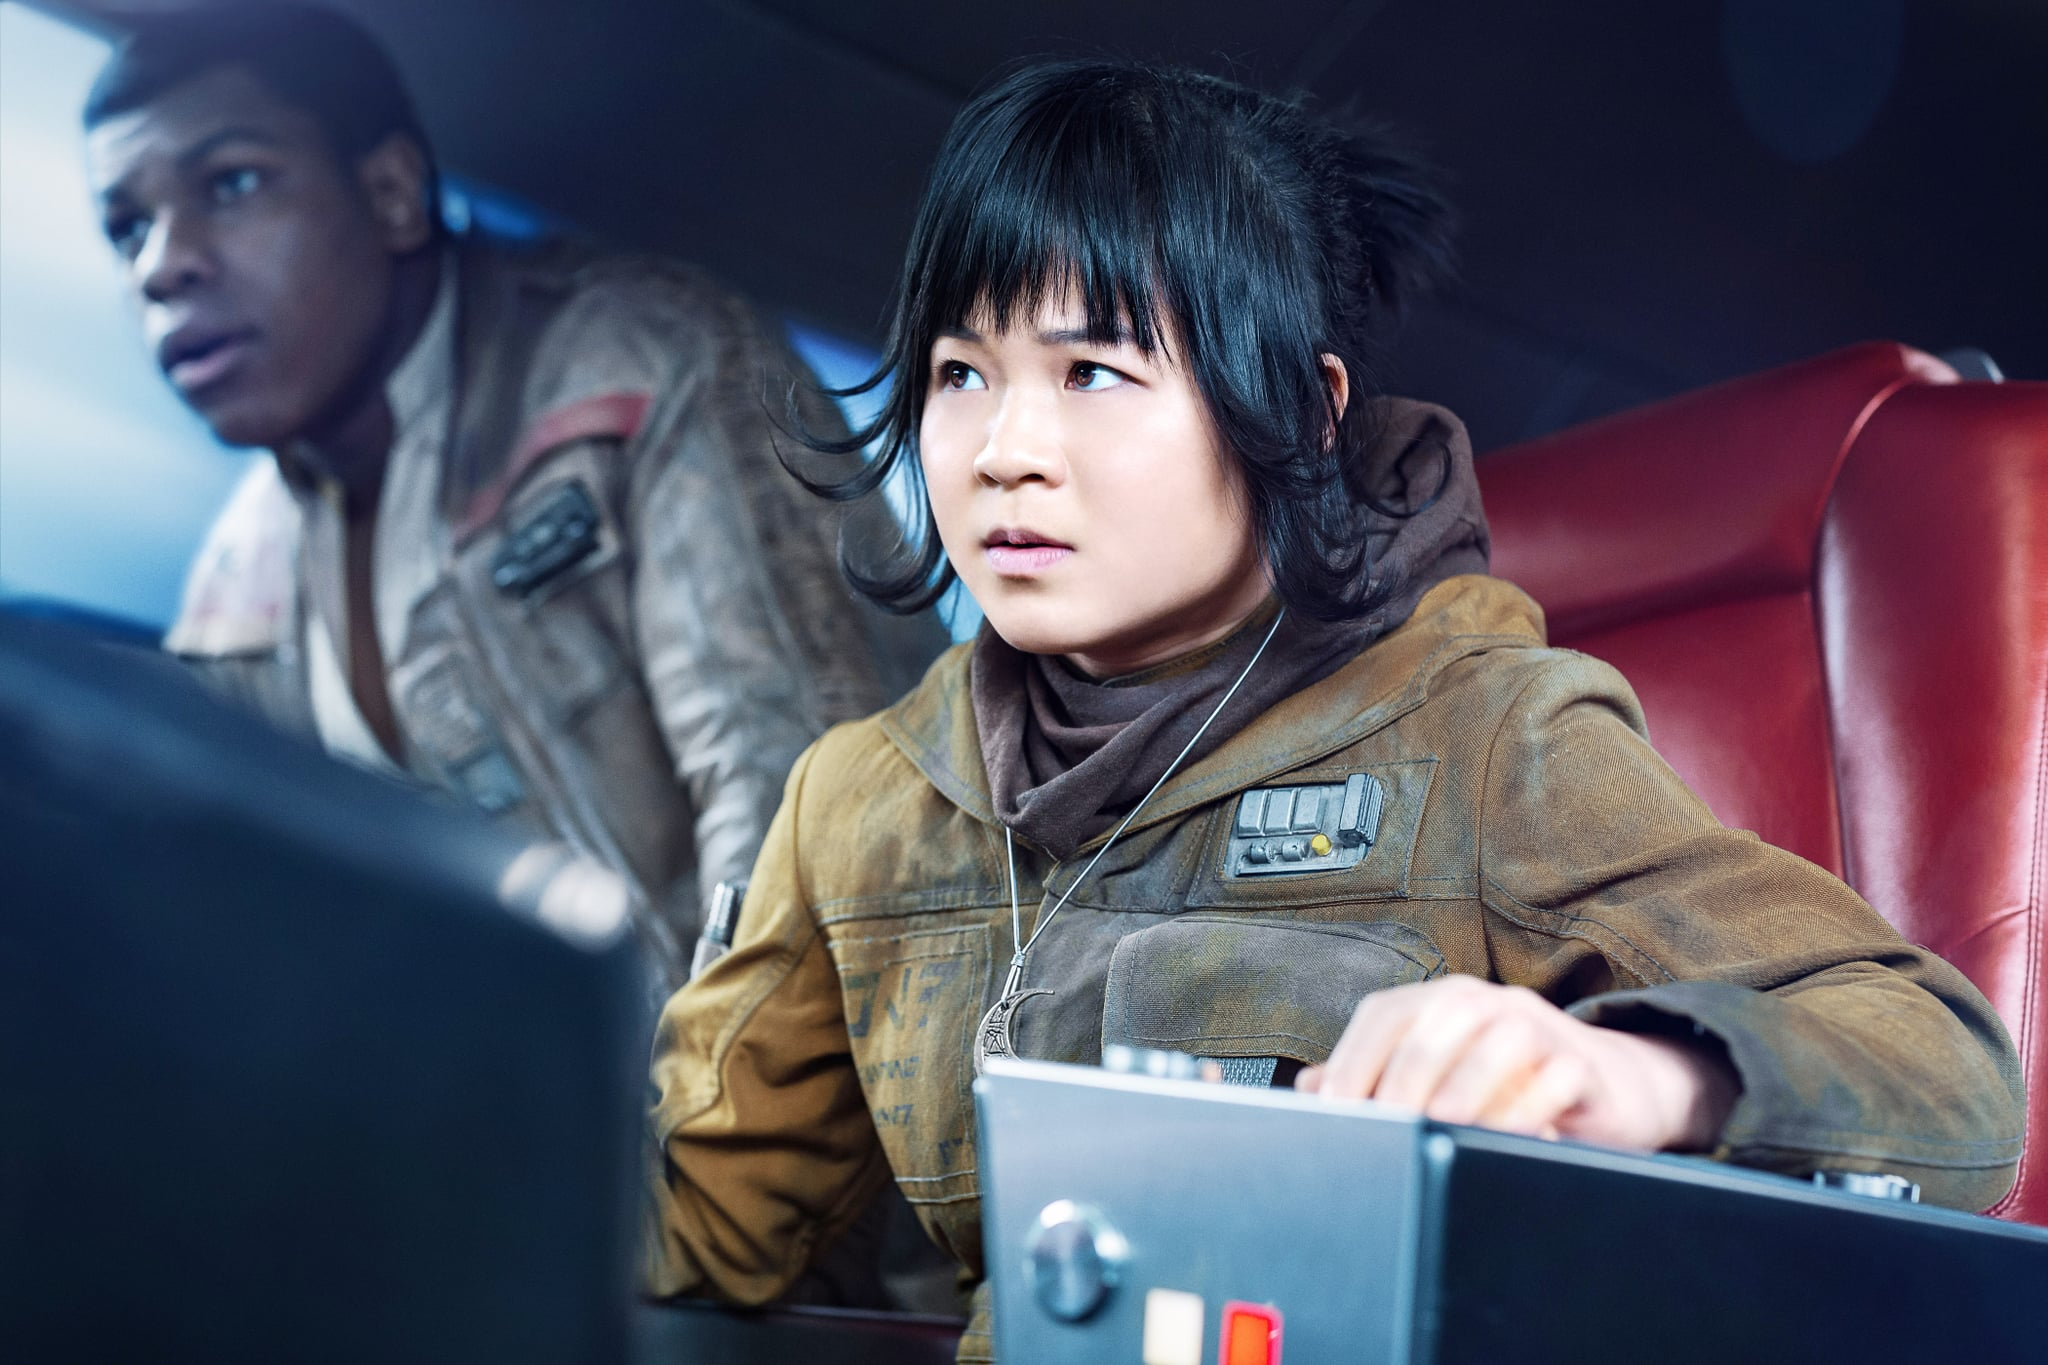 STAR WARS: THE LAST JEDI, (aka STAR WARS: EPISODE VIII - THE LAST JEDI), from left: John Boyega, Kelly Marie Tran, 2017. ph: Jonathan Olley / Walt Disney Studios Motion Pictures /  Lucasfilm Ltd. /Courtesy Everett Collection